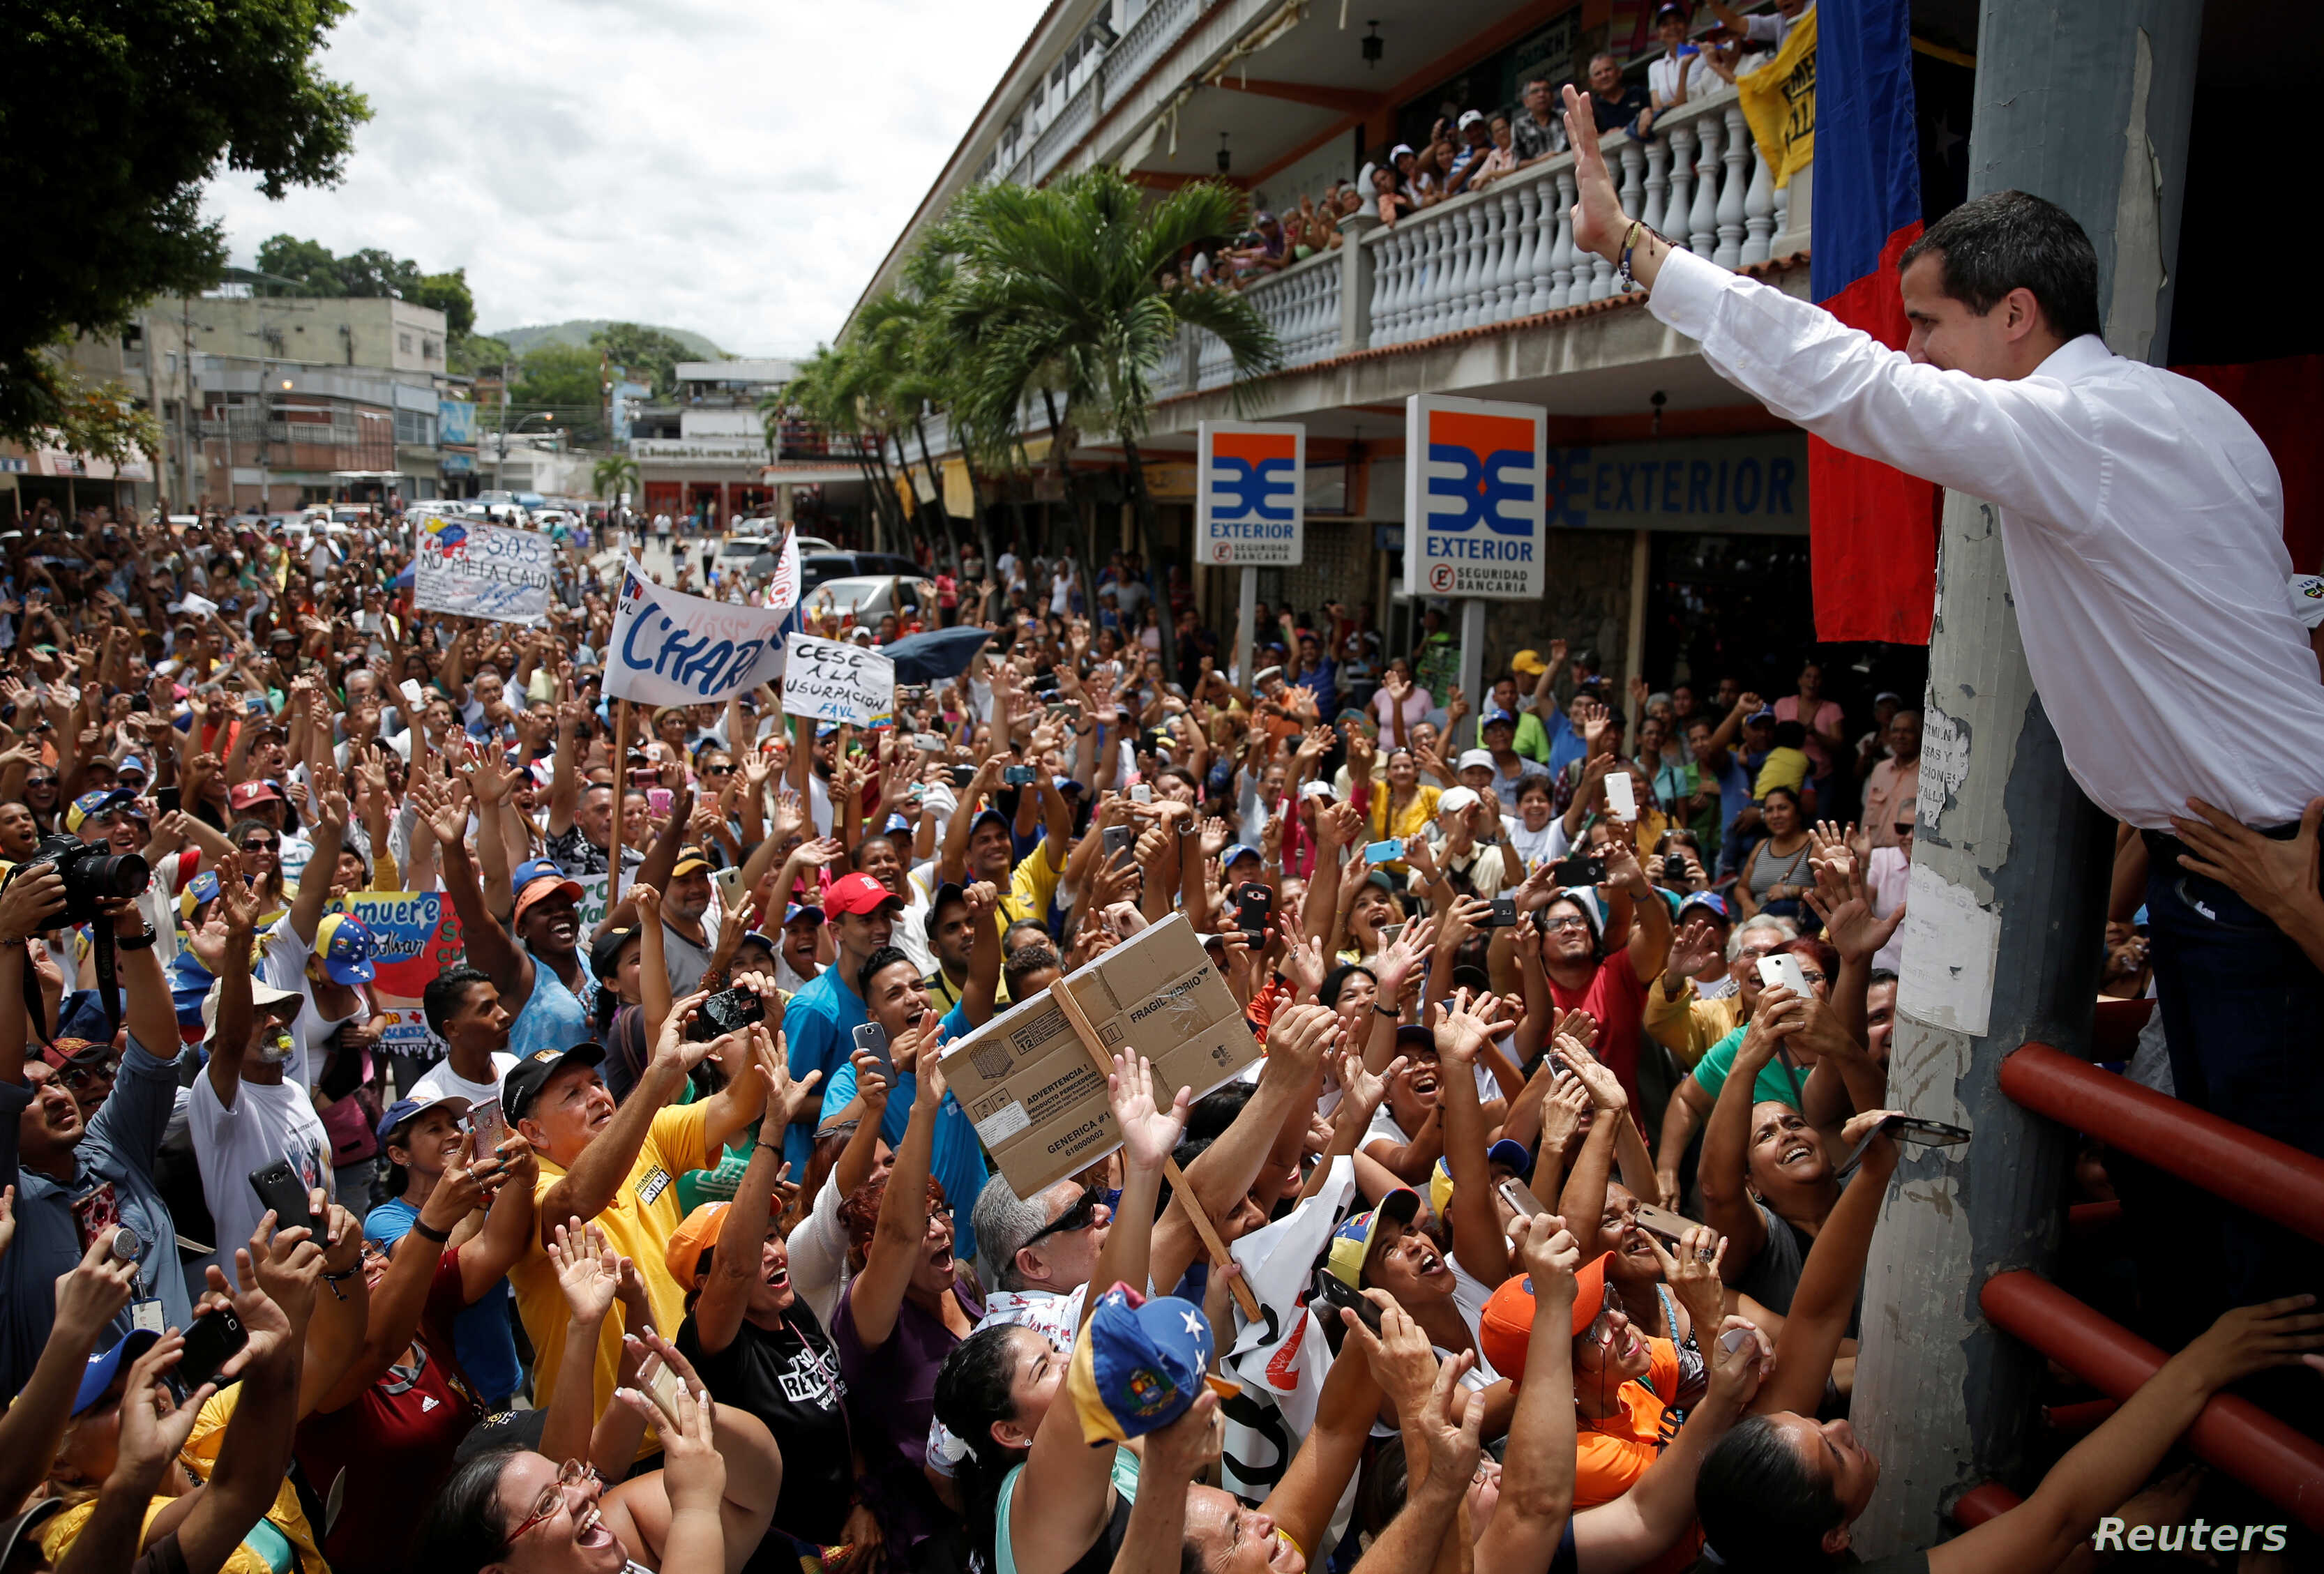 FILE - Venezuelan opposition leader Juan Guaido, who many nations have recognized as the country's rightful interim ruler, greets supporters during a gathering in Charallave, Venezuela, June 8, 2019.